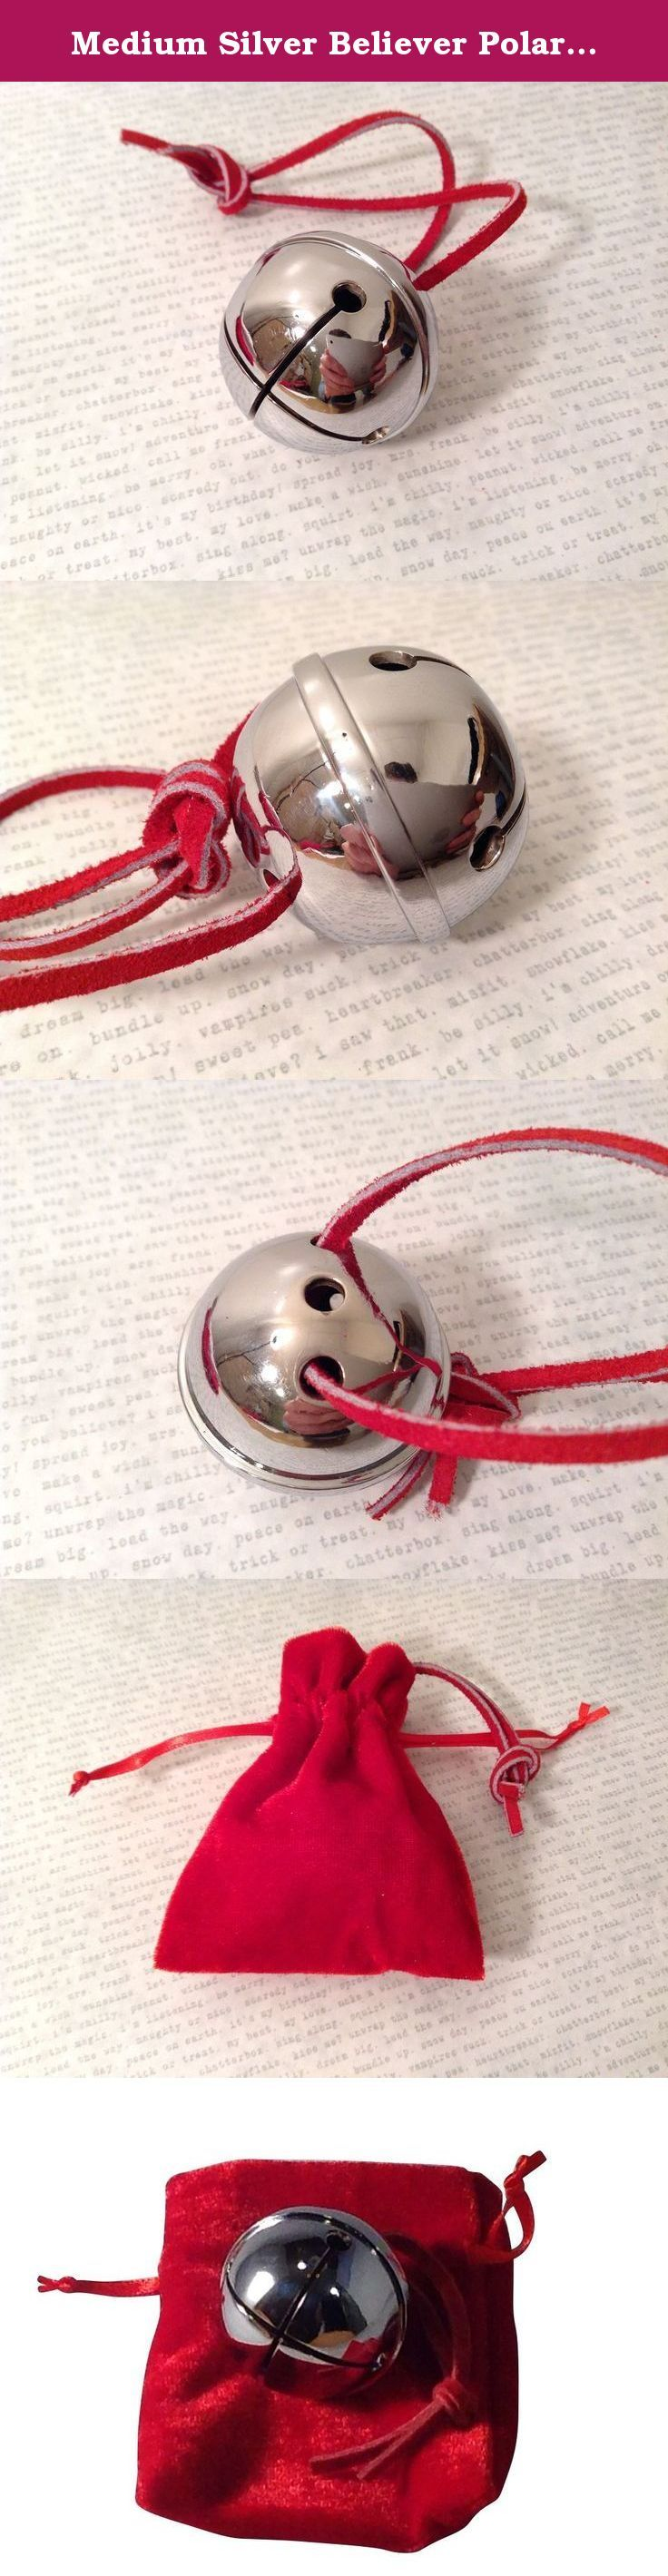 Medium Silver Believer Polar Express Sleigh Bell with Real Leather Harness. This is a real sleigh bell, manufactured in the traditional age old sand cast method. Heavy, substantial, heirloom quality Meant to last a lifetime.